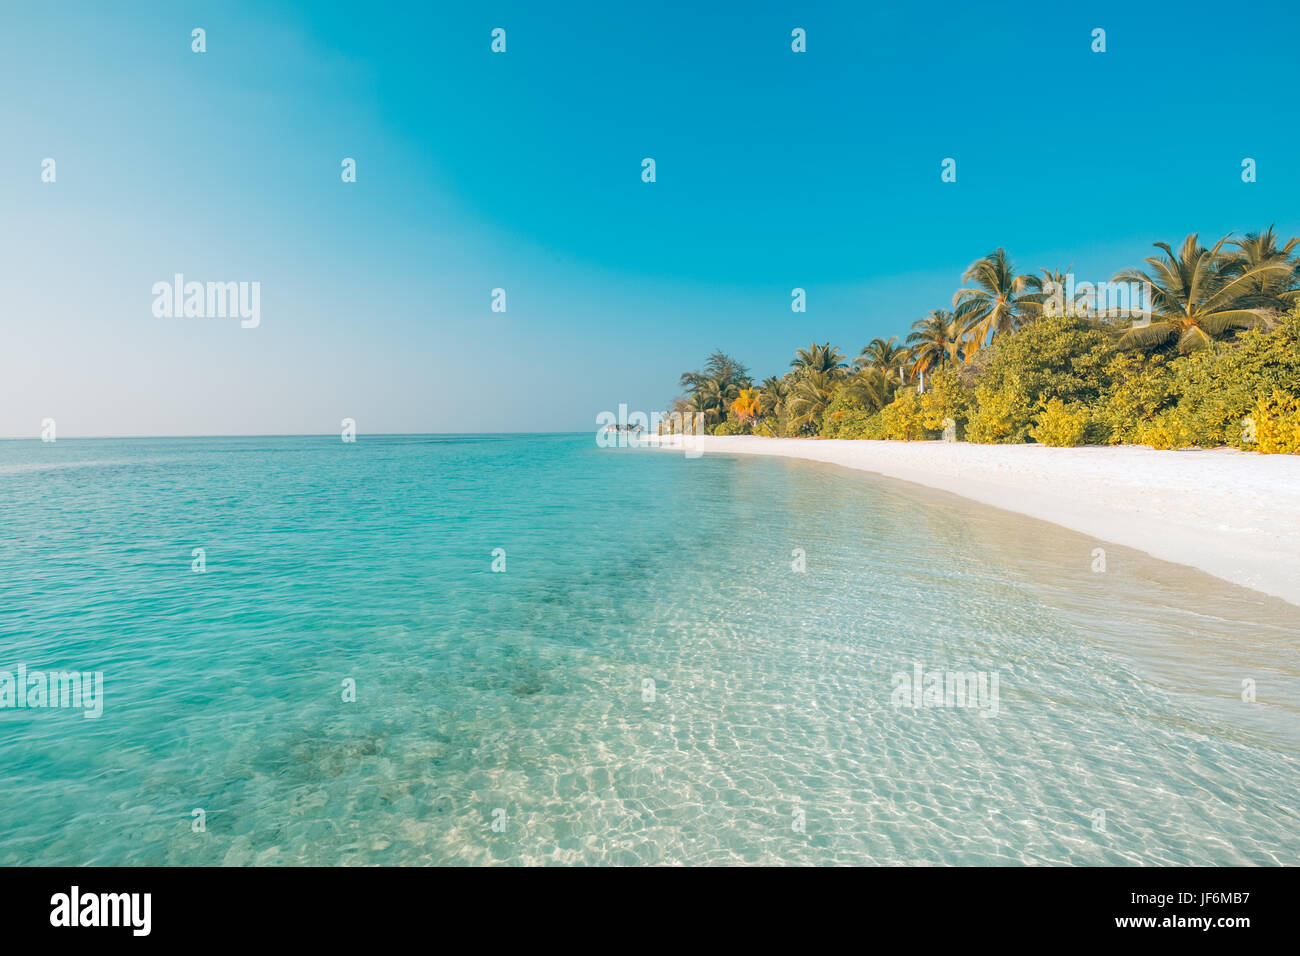 Perfect beach view. Summer holiday and vacation design. Inspirational tropical beach, palm trees and white sand. - Stock Image